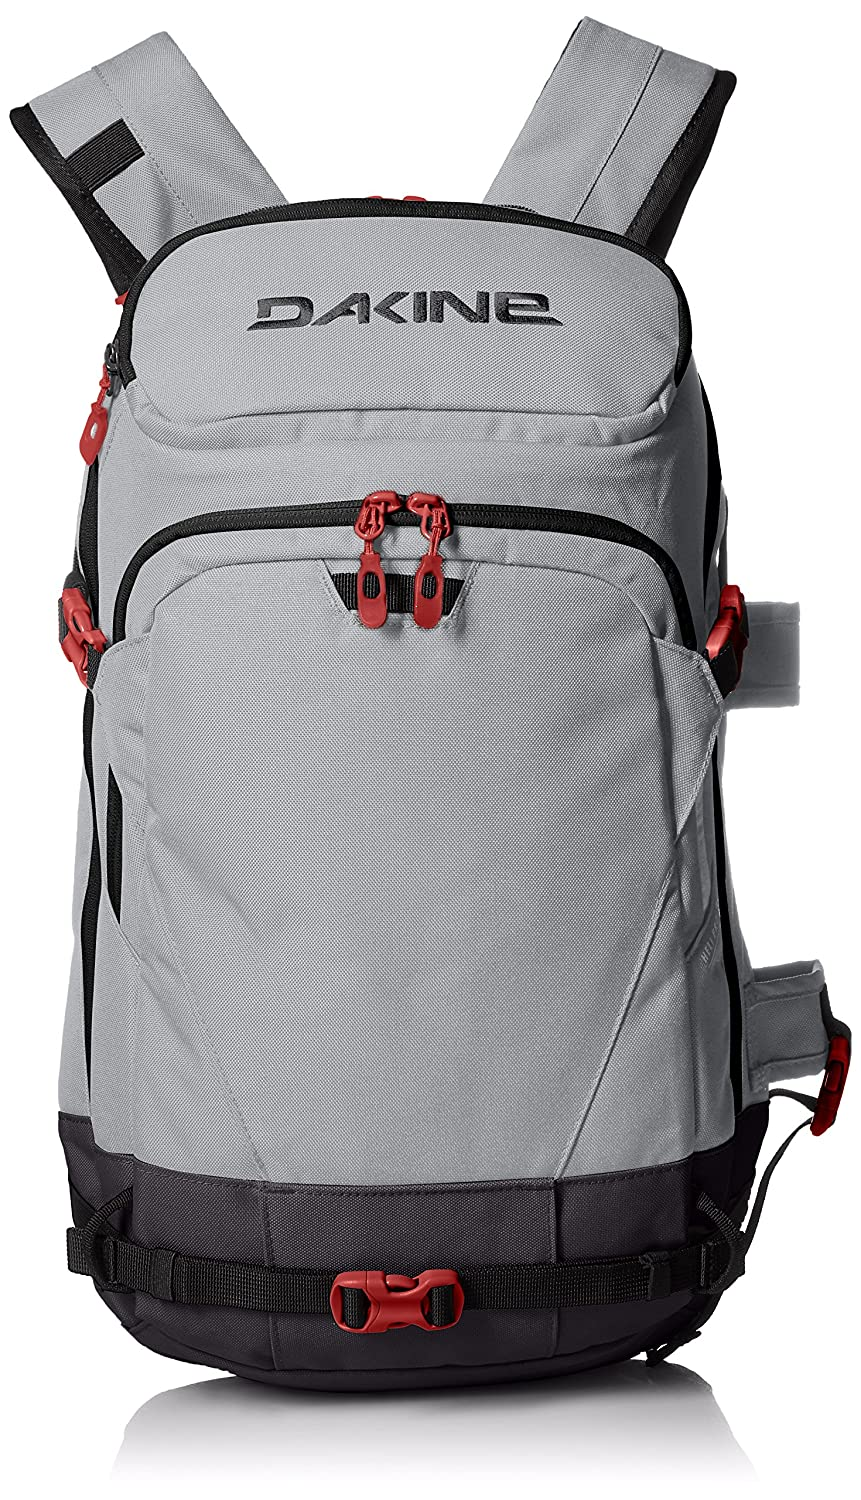 Amazon.com : Dakine Heli Pro Backpack : Sports & Outdoors